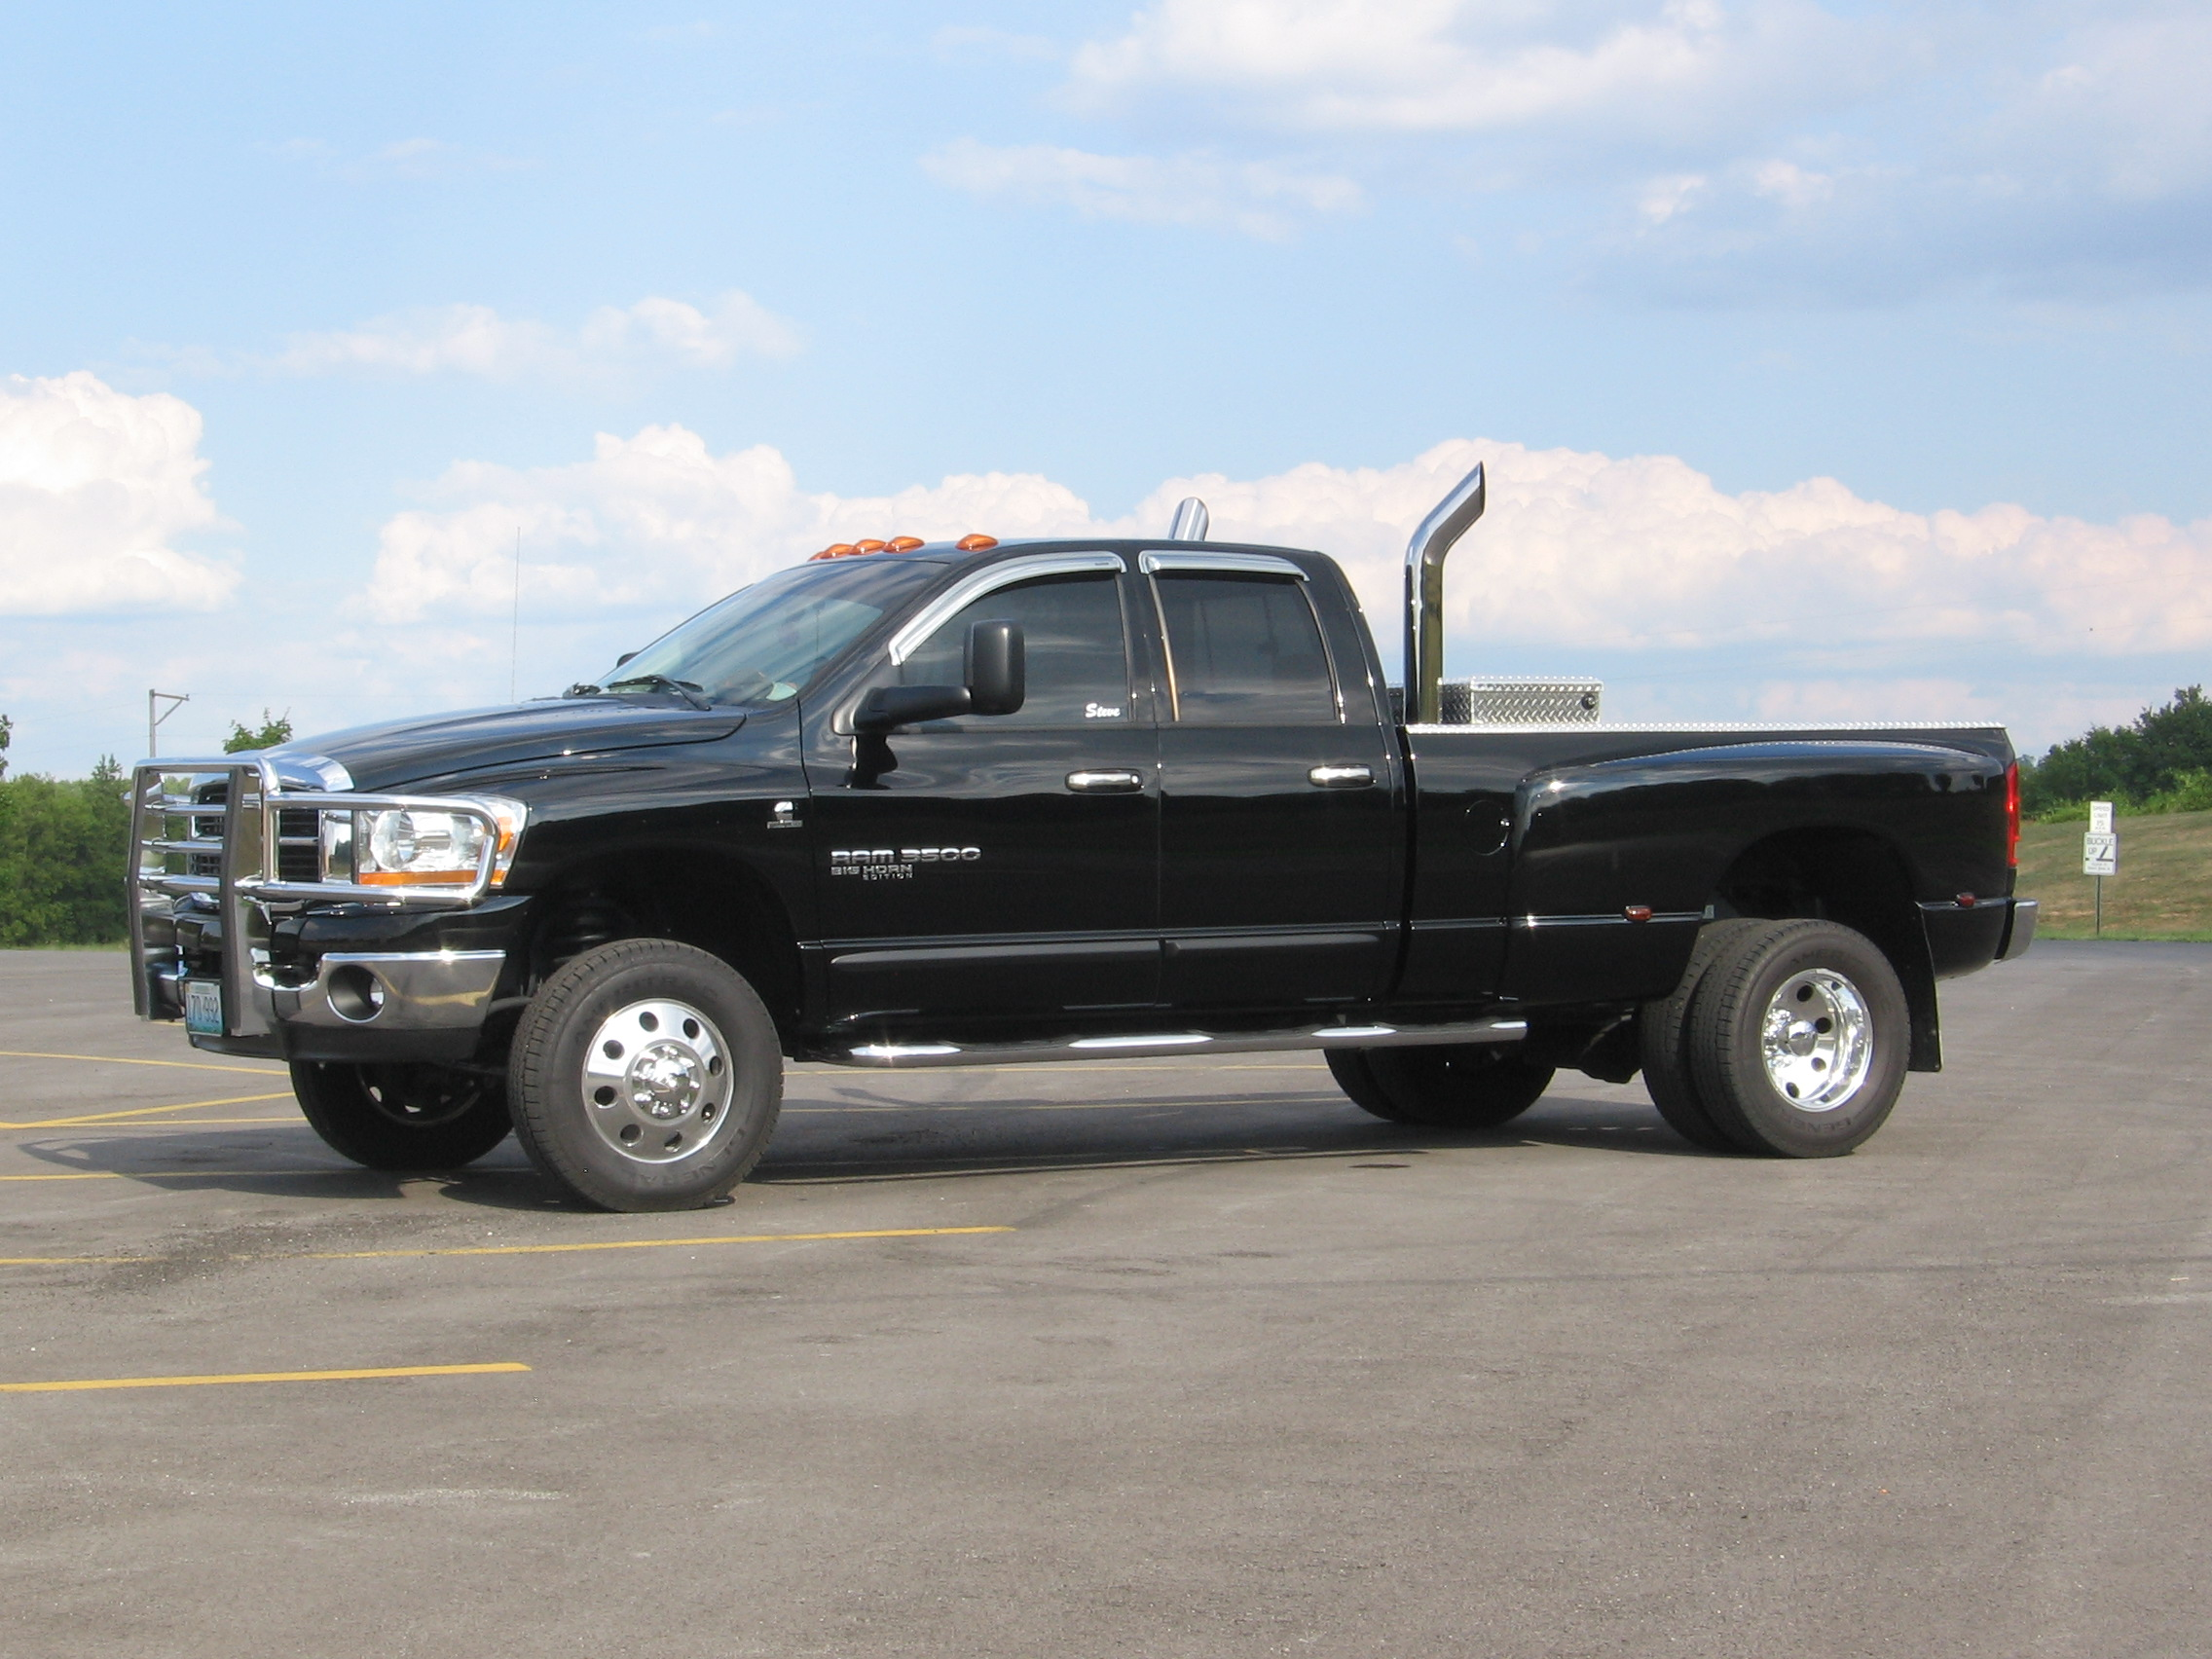 dodge 3500 dually with stacks dodge ram 2500 lifted with pictures to - Dodge Ram 3500 Dually Lifted With Stacks